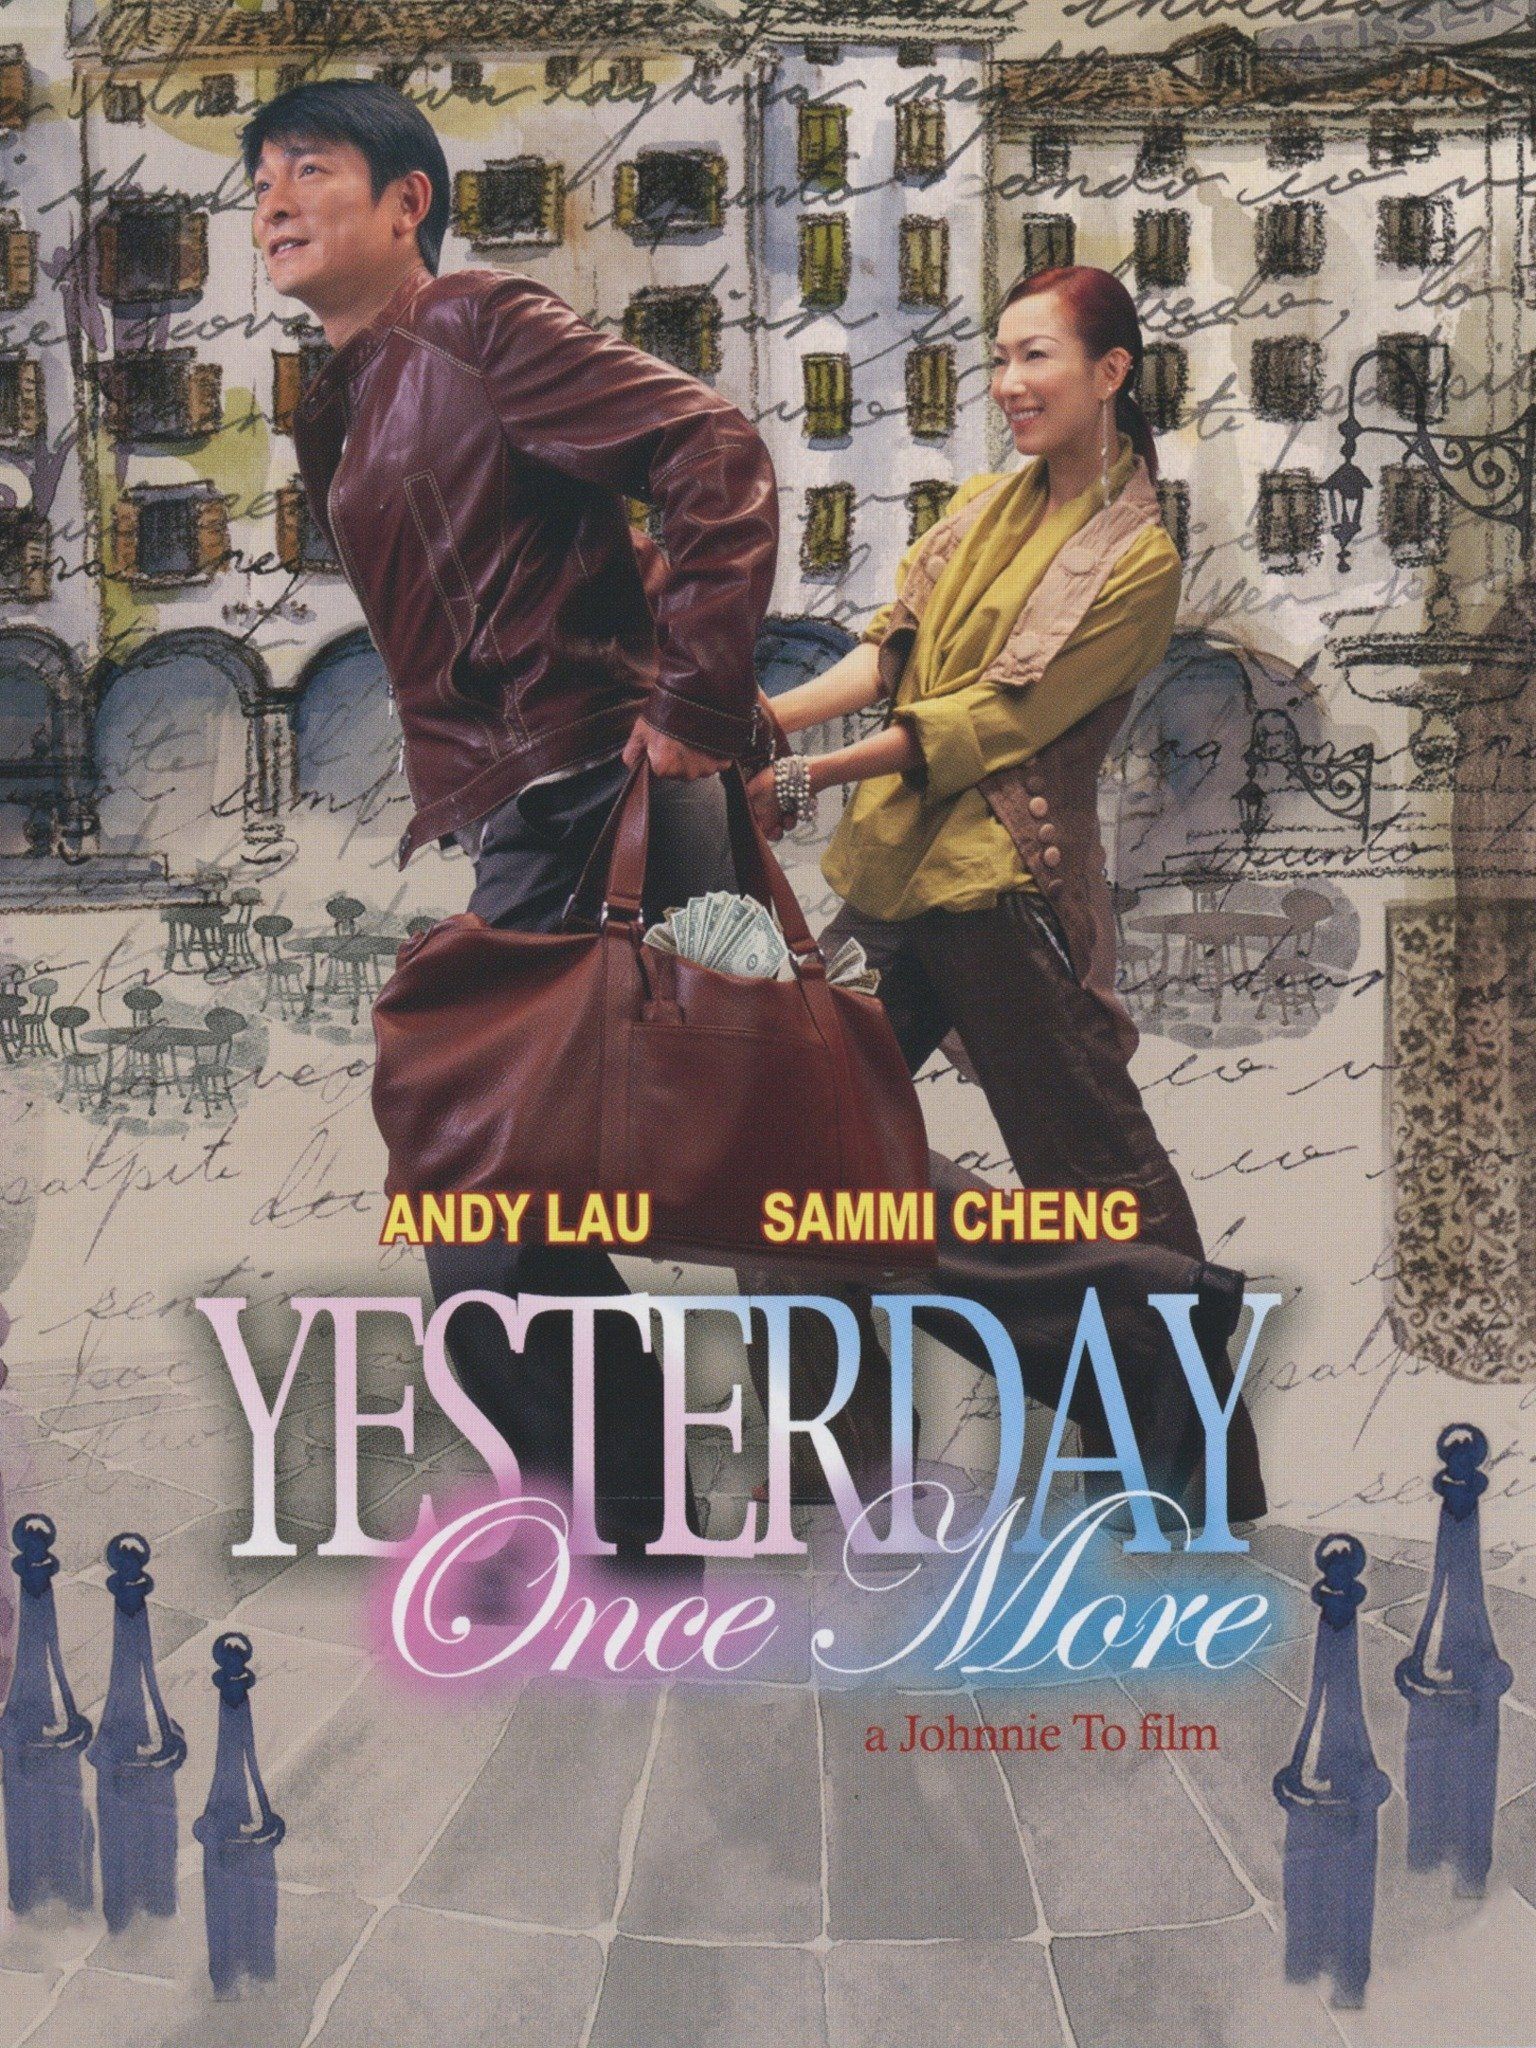 Yesterday Once More Film : yesterday, Yesterday, (2004), Rotten, Tomatoes